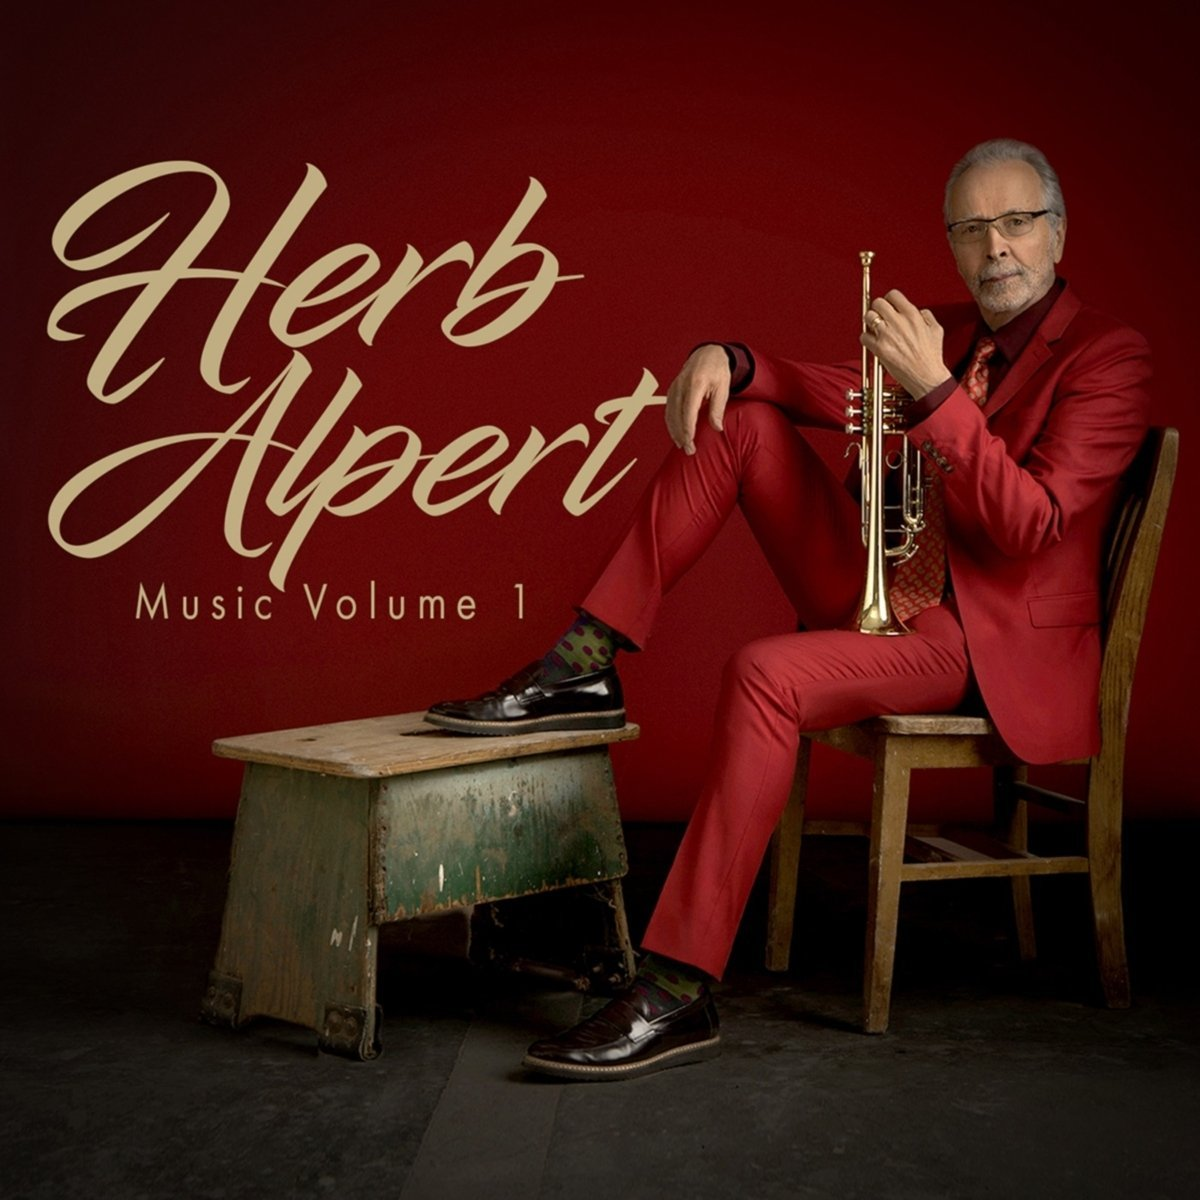 jazz 08 17 herbAlpert mv1